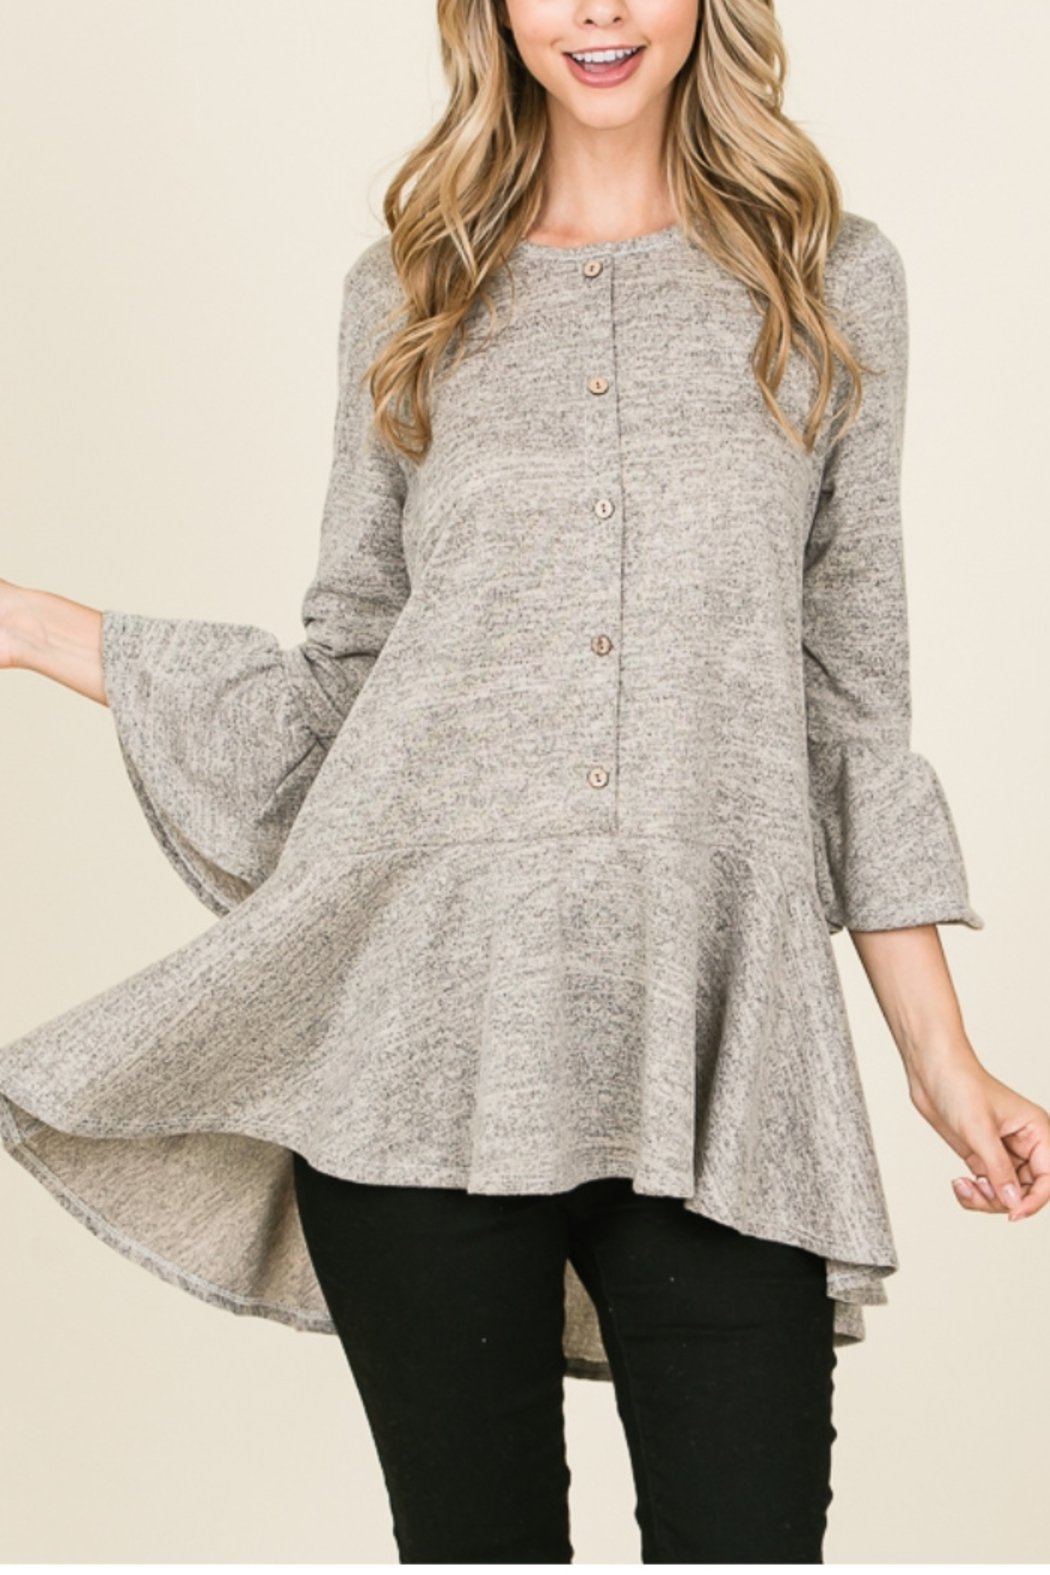 Reborn J Flowy, Ultra Soft Tunic with Button Detail {{OLIVE}} - Main Image